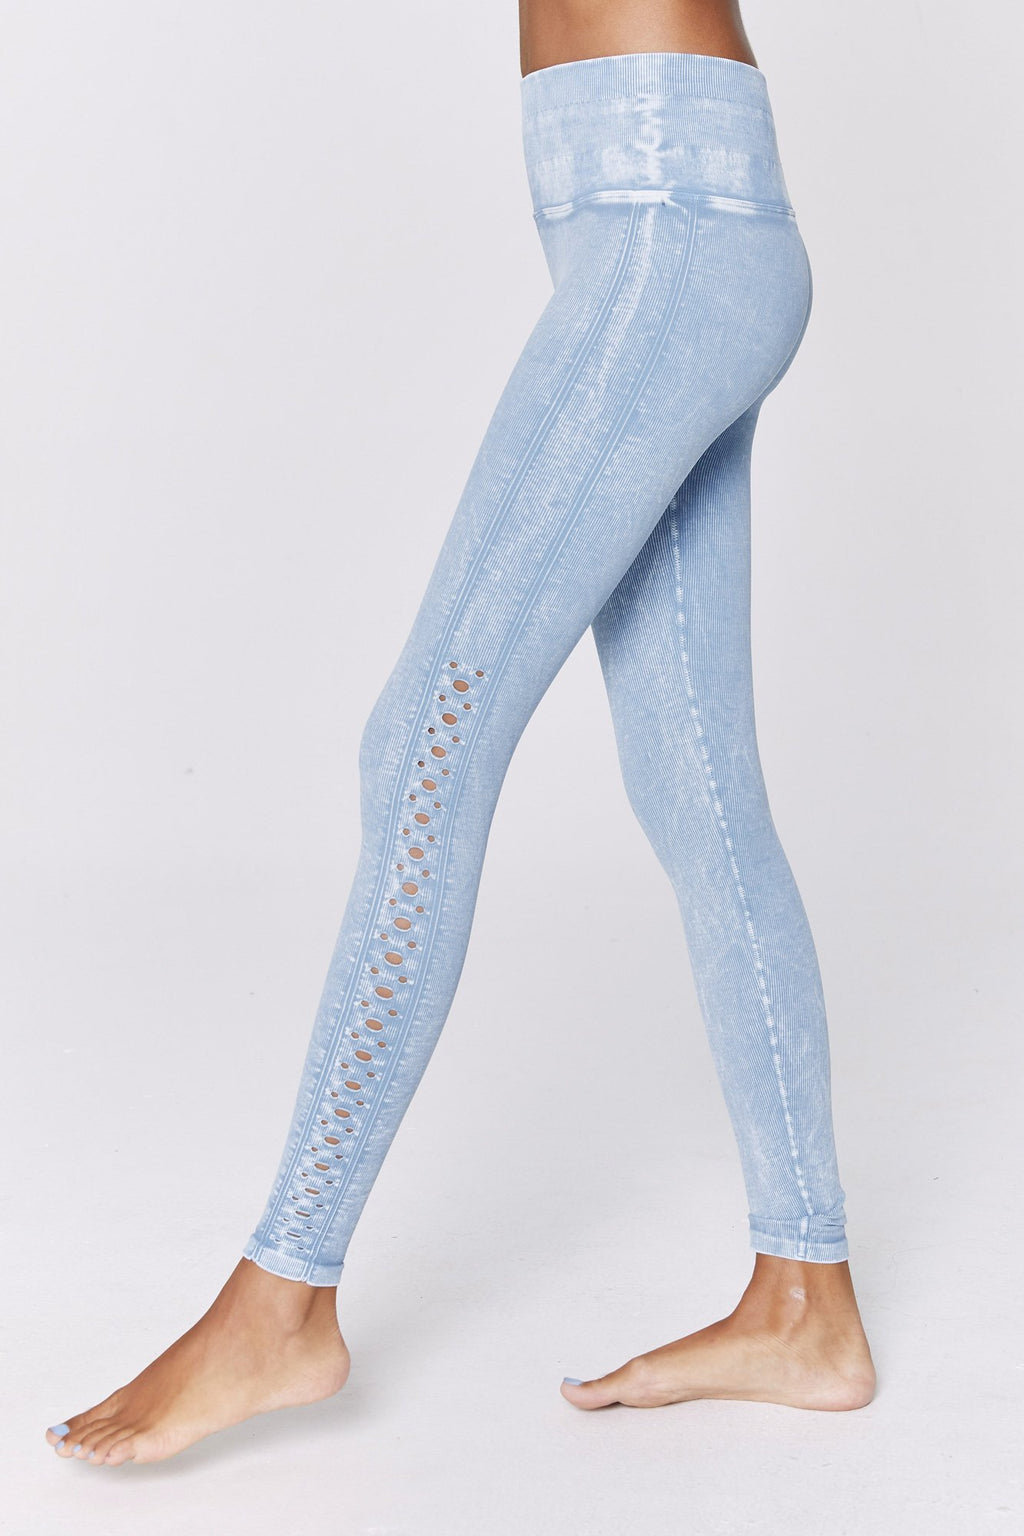 Spiritual Gangster Self Loving Legging Aqua Blue Side View